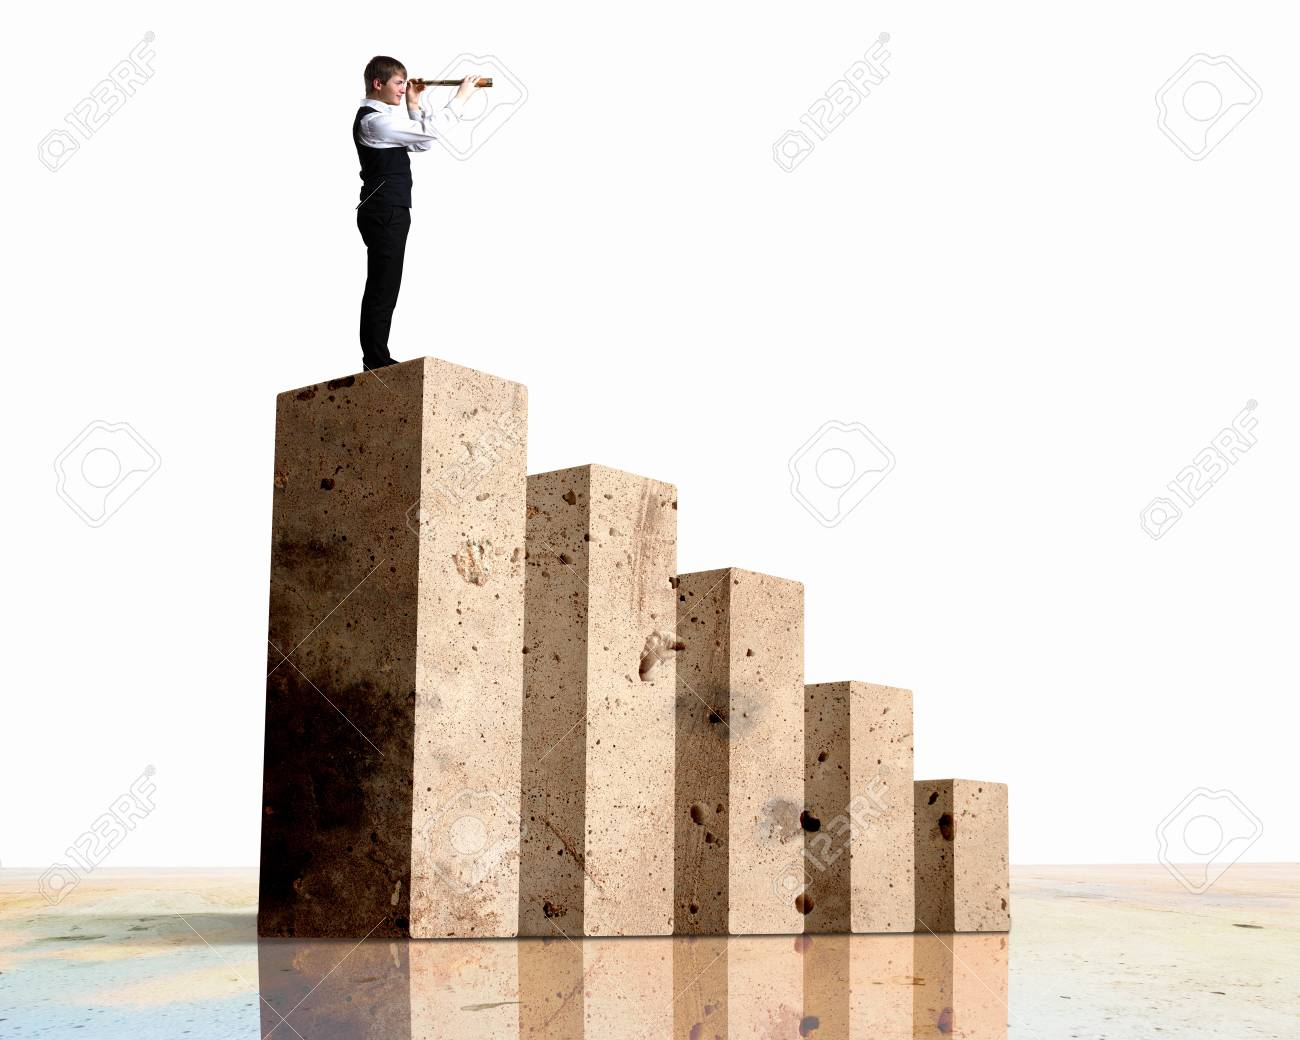 Business person on a graph, representing success and growth Stock Photo - 17869560